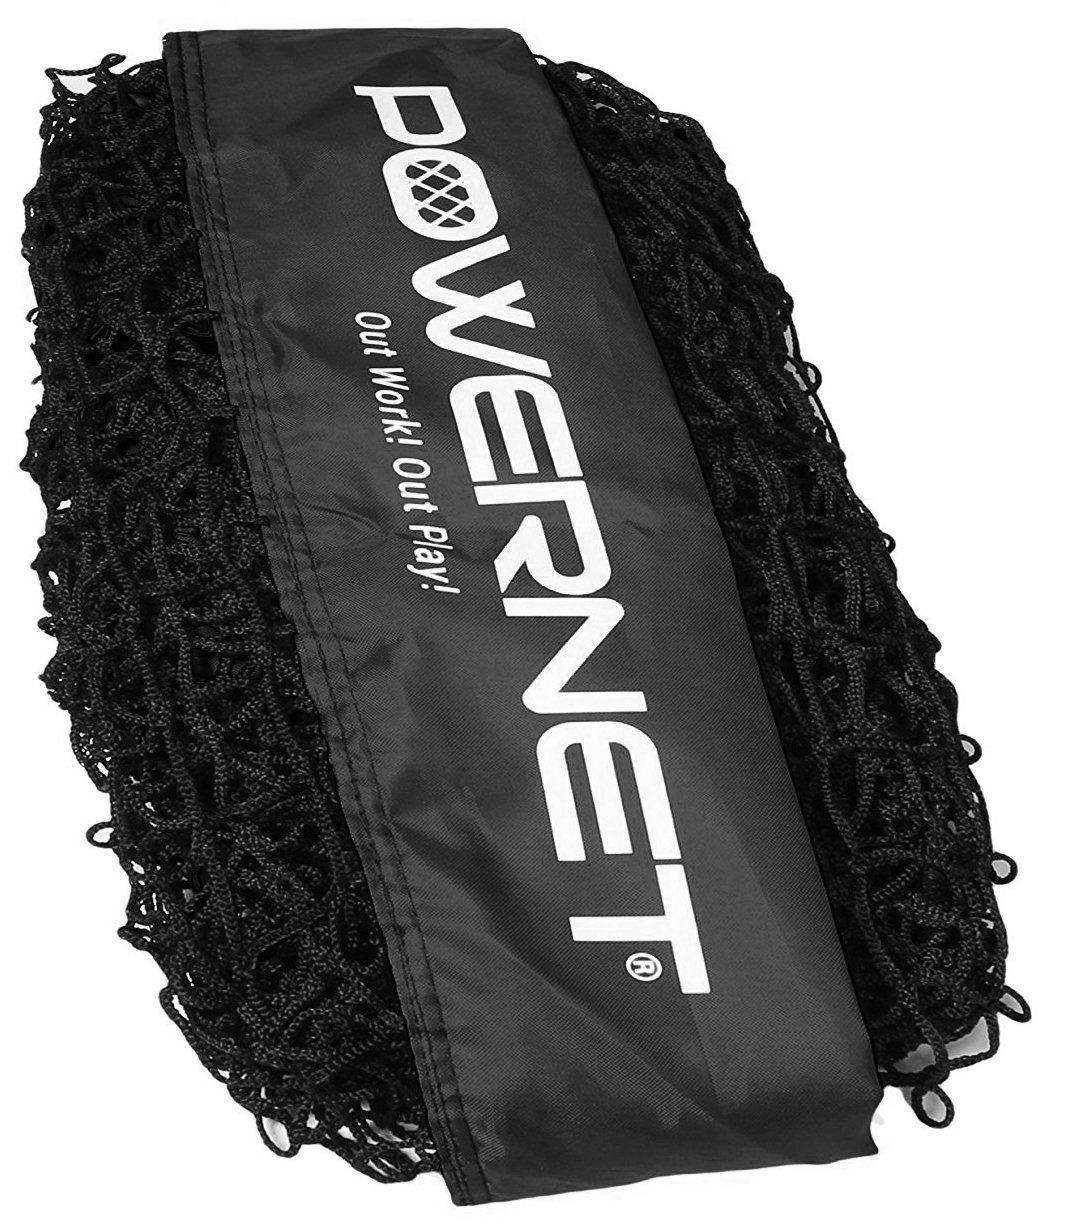 PowerNet Team Color Nets Baseball and Softball 7x7 Bow Style (NET ONLY) Replacement | Heavy Duty Knotless | Durable PU Coated Polyester | Double Stitched Seams for Extra Strength (Black) by PowerNet